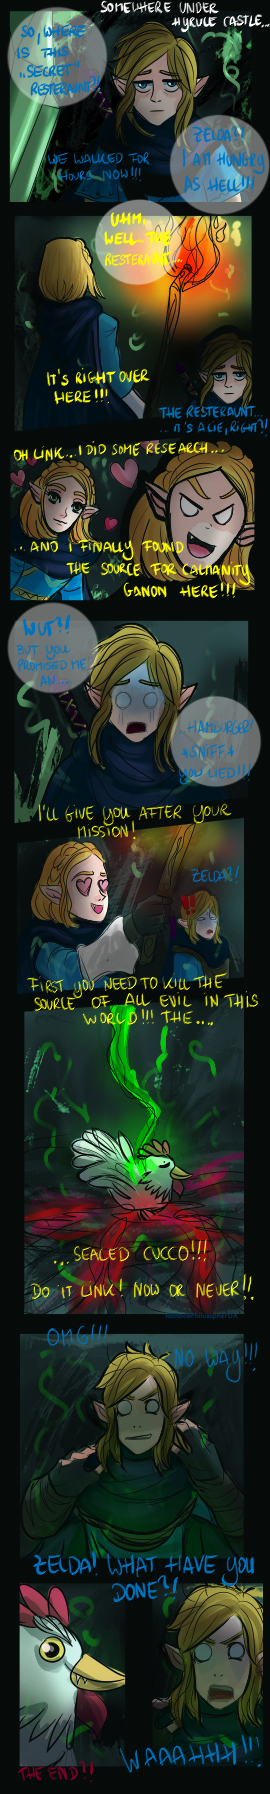 The source of all evil in Hyrule